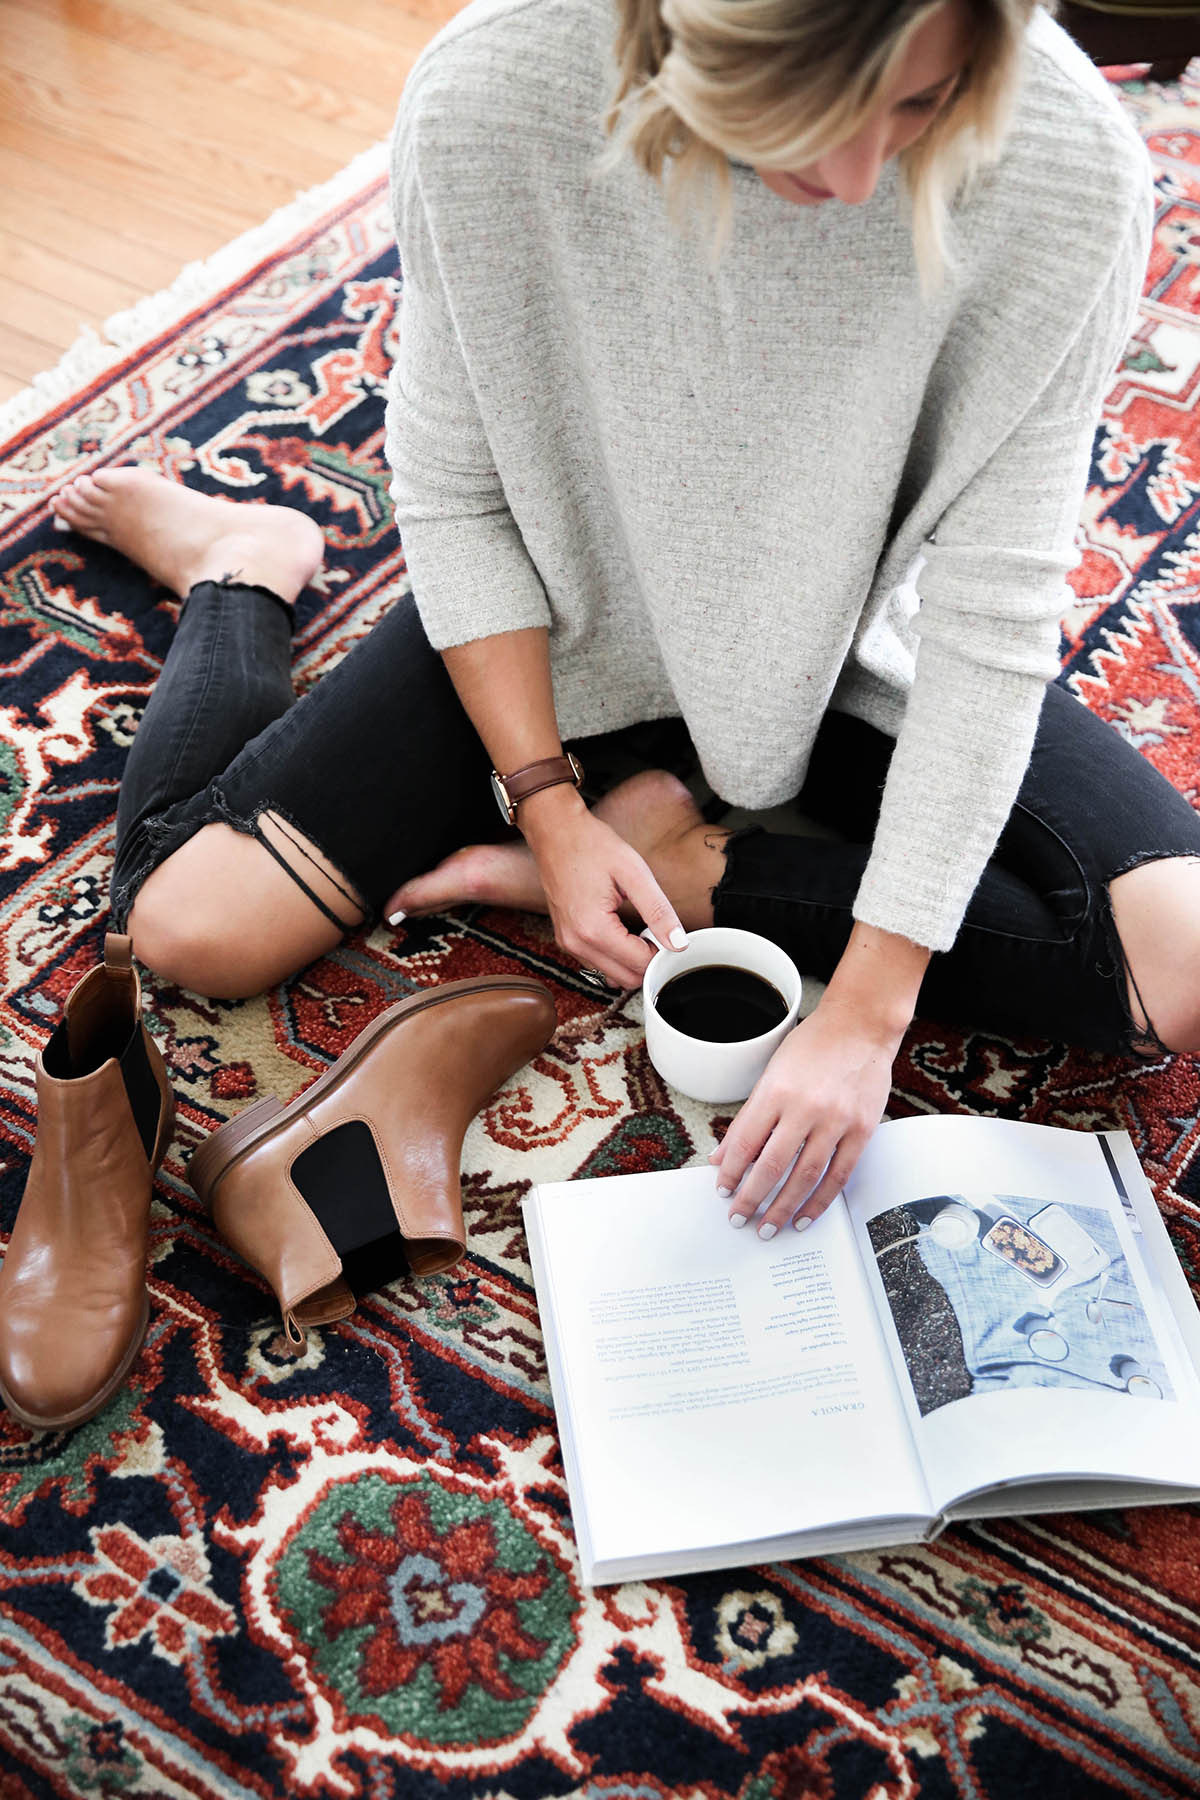 free people arctic fox sweater with chelsea boots and black distressed skinny jeans on antique rug